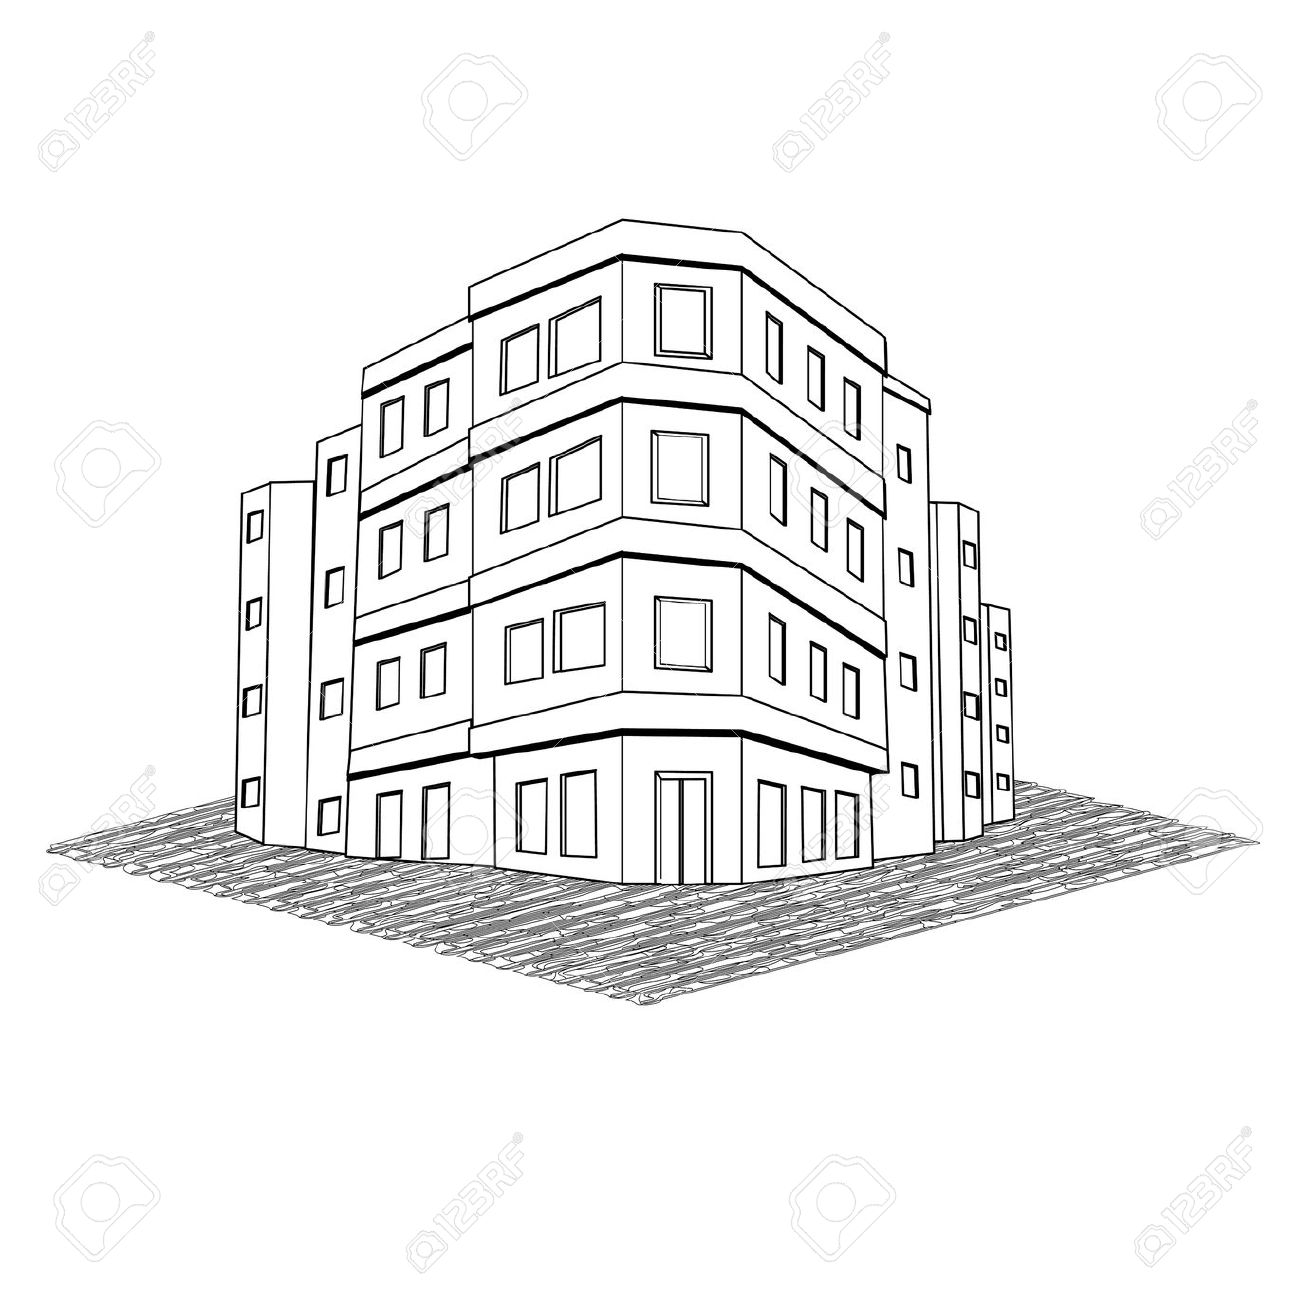 Office Building Drawing At Getdrawings